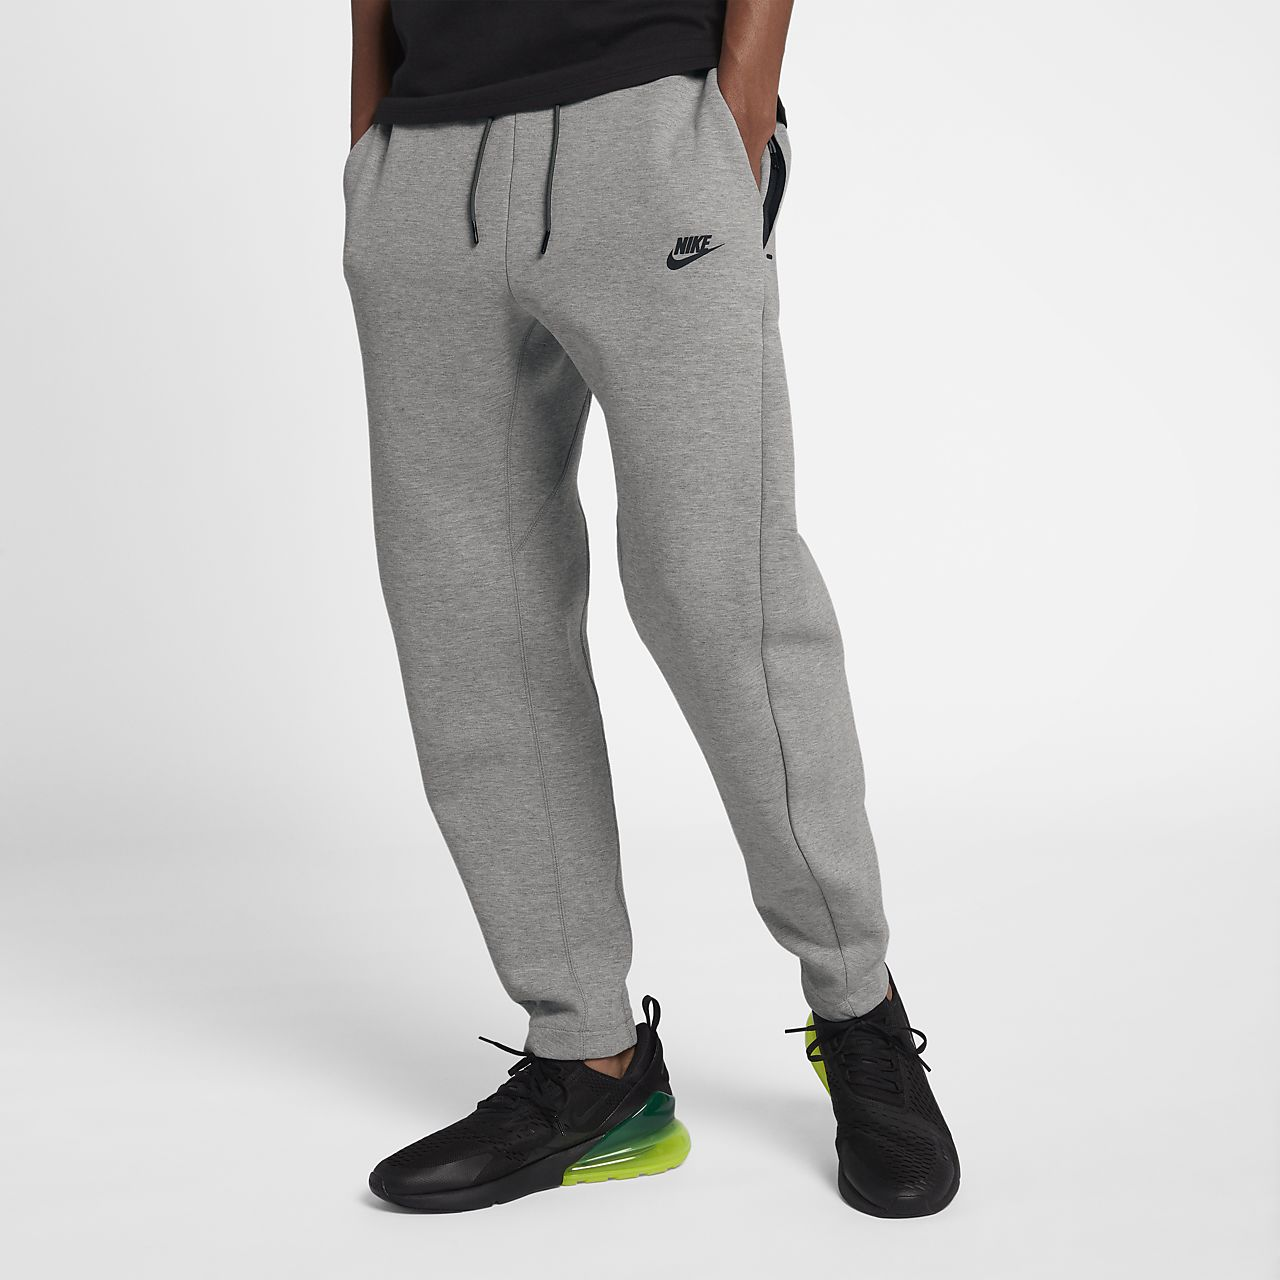 nike sportswear tech fleece men 39 s pants. Black Bedroom Furniture Sets. Home Design Ideas